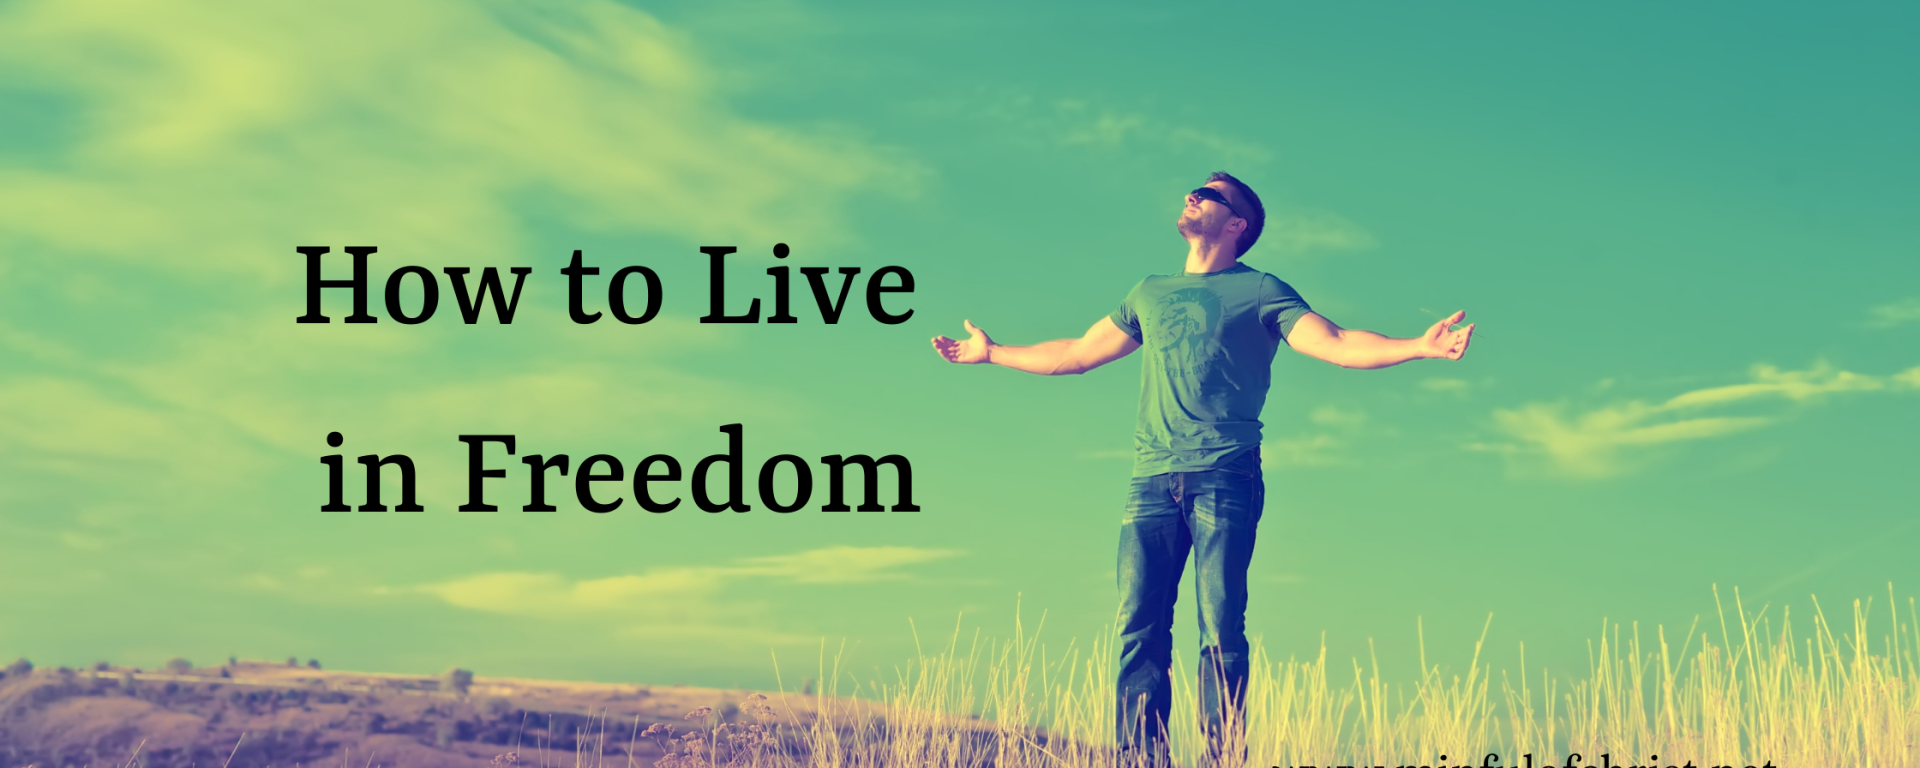 How to Live in Freedom